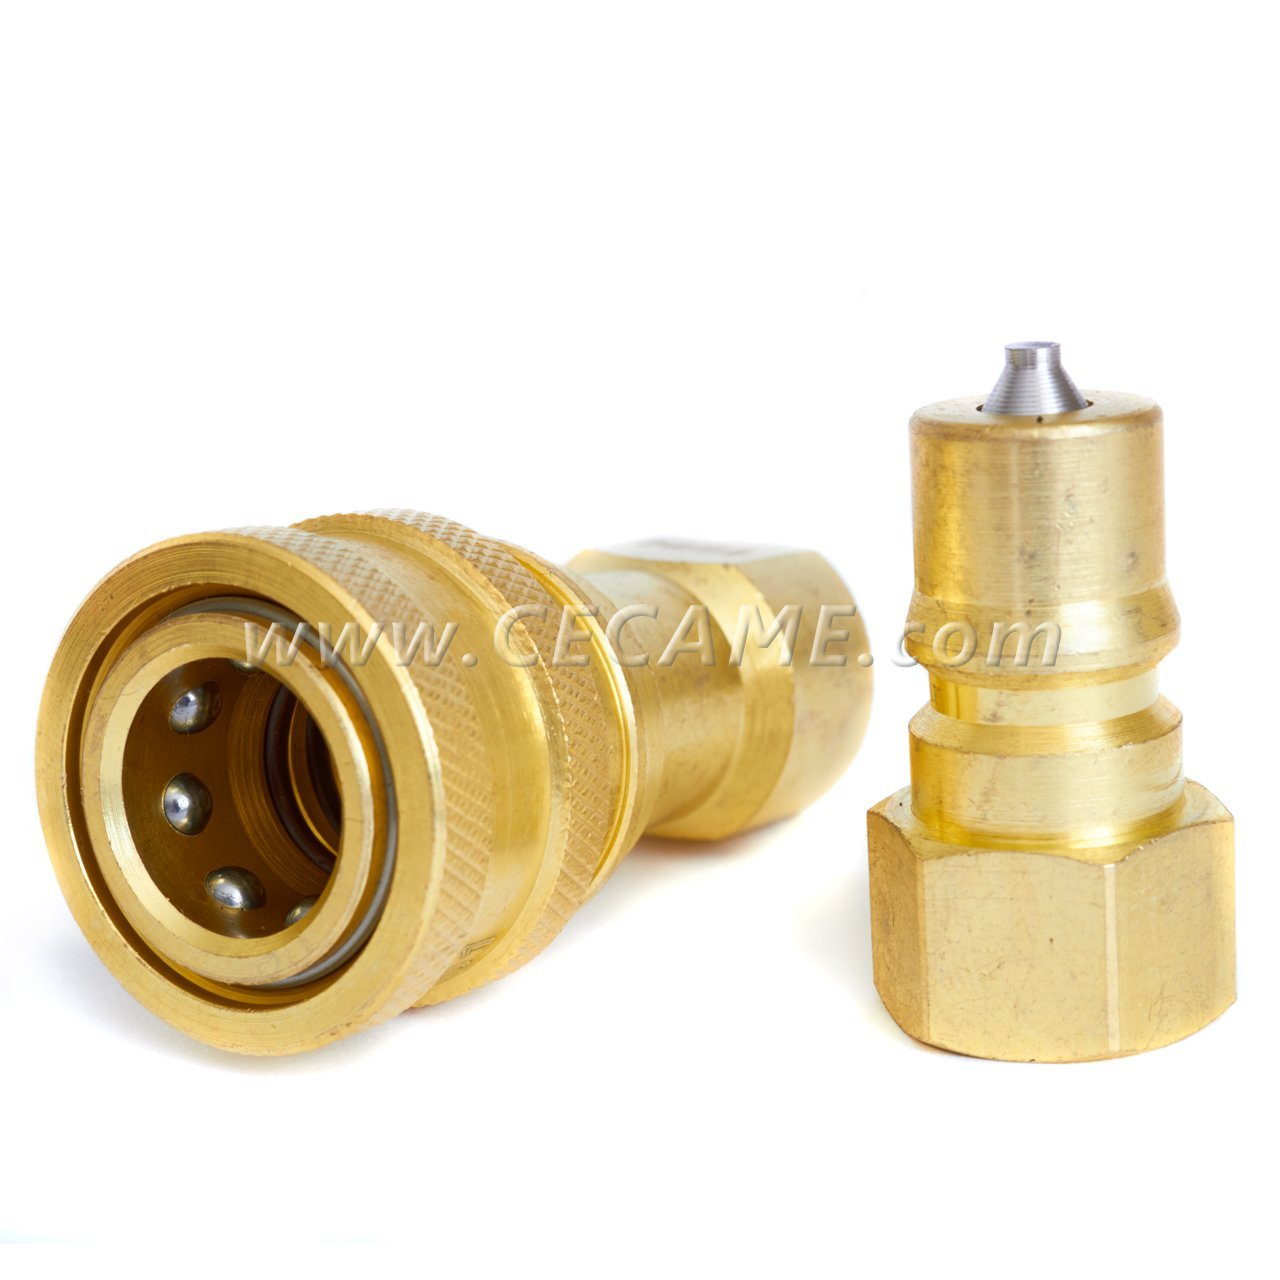 "1/4"" Quick Disconnect Coupler Valve For Carpet Cleaning Wand Truckmount QD 61xu7vW56IL"